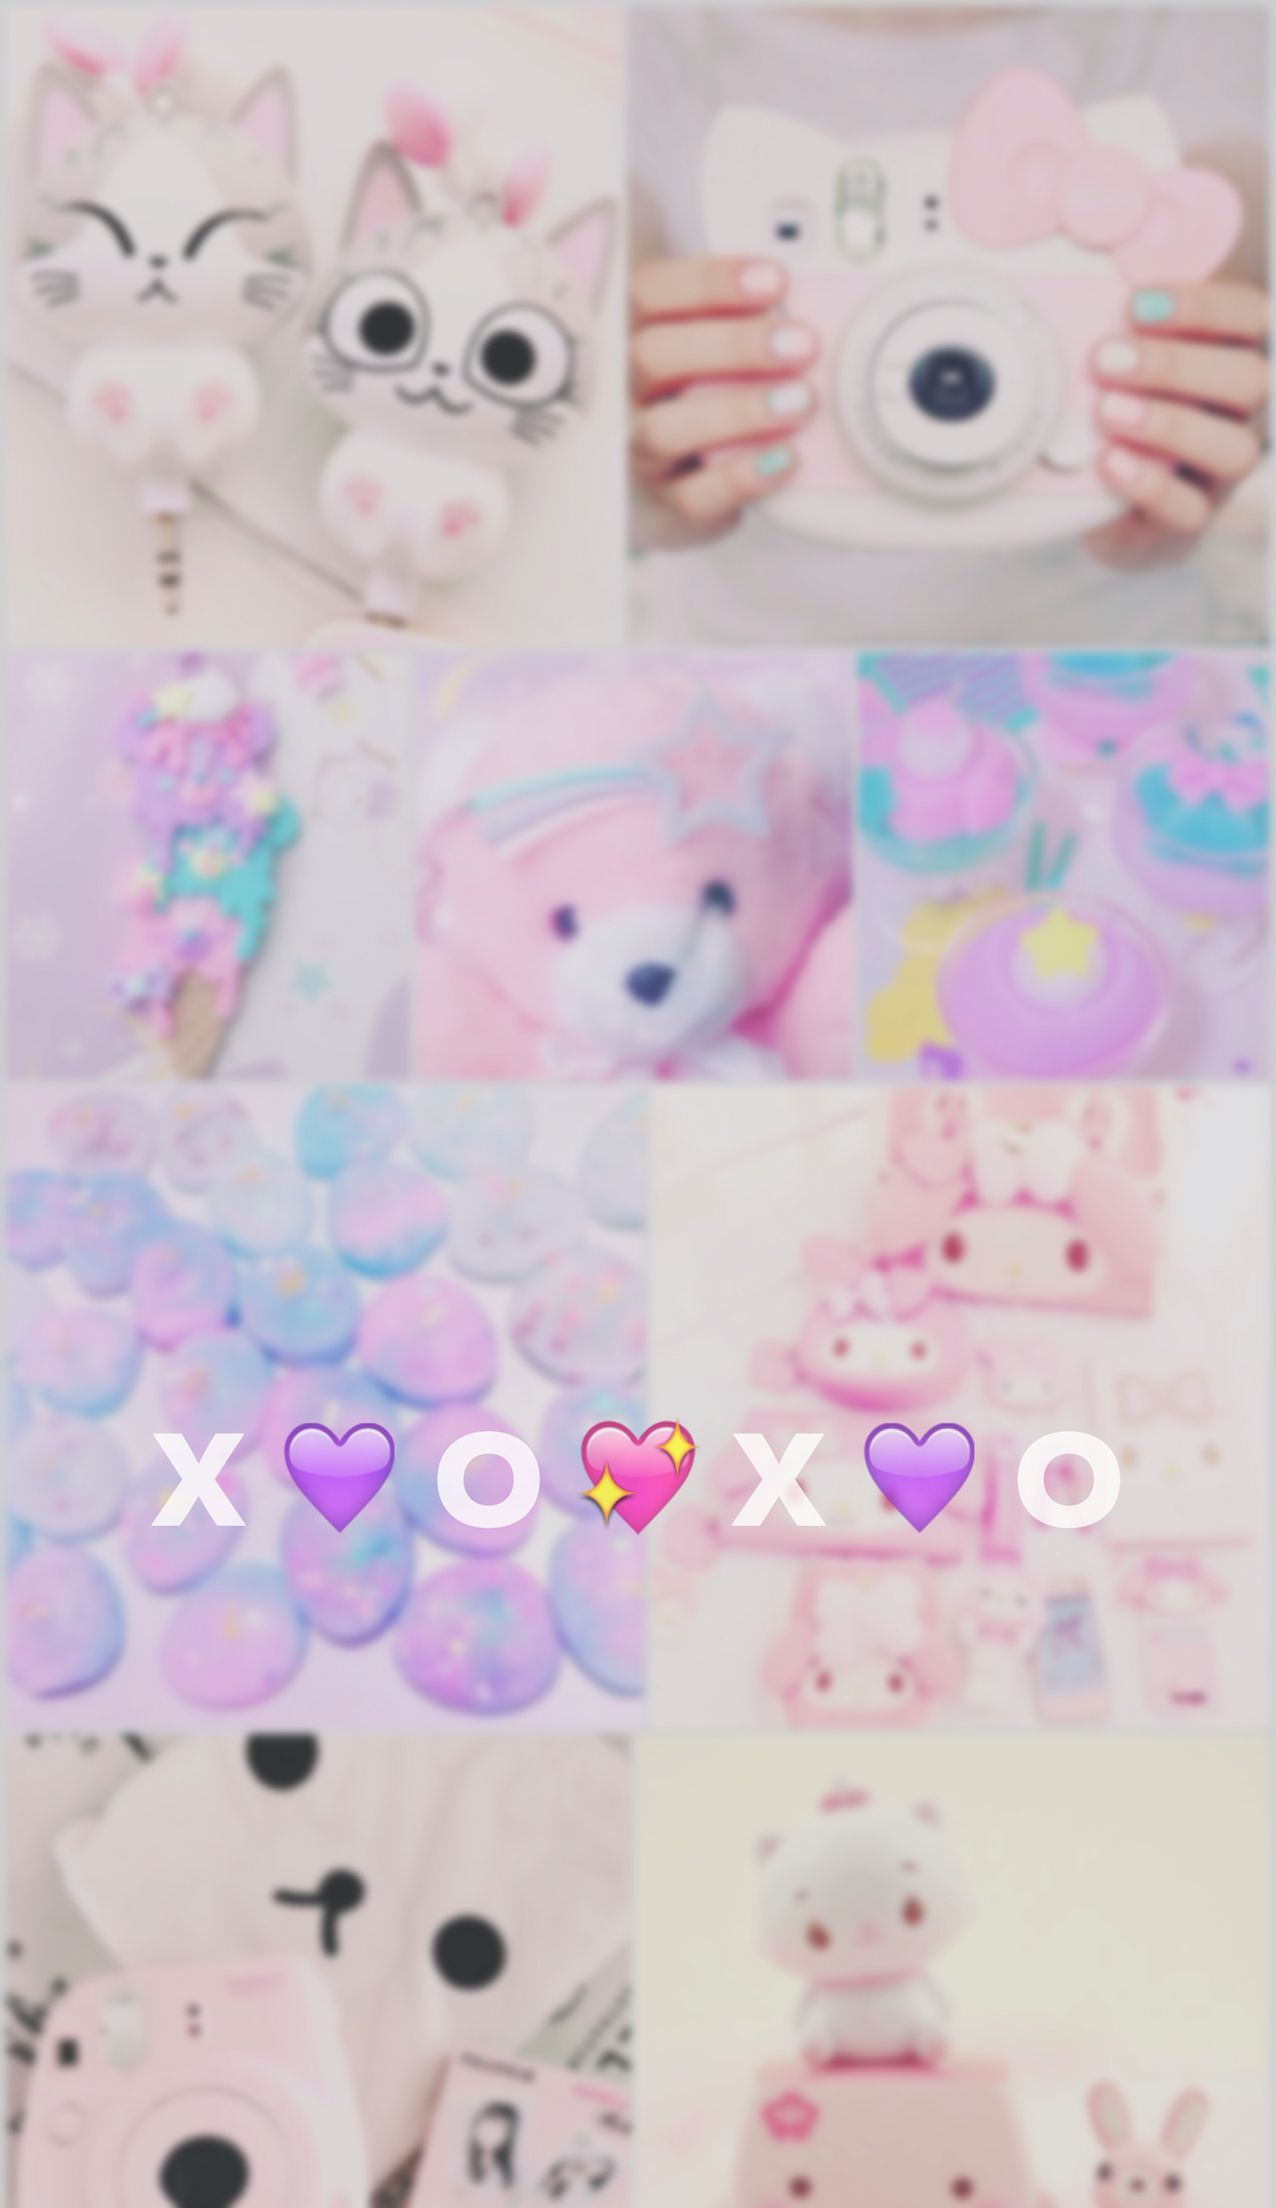 Kawaii, cute, pastel, wallpaper, iPhone, emoji, xoxo